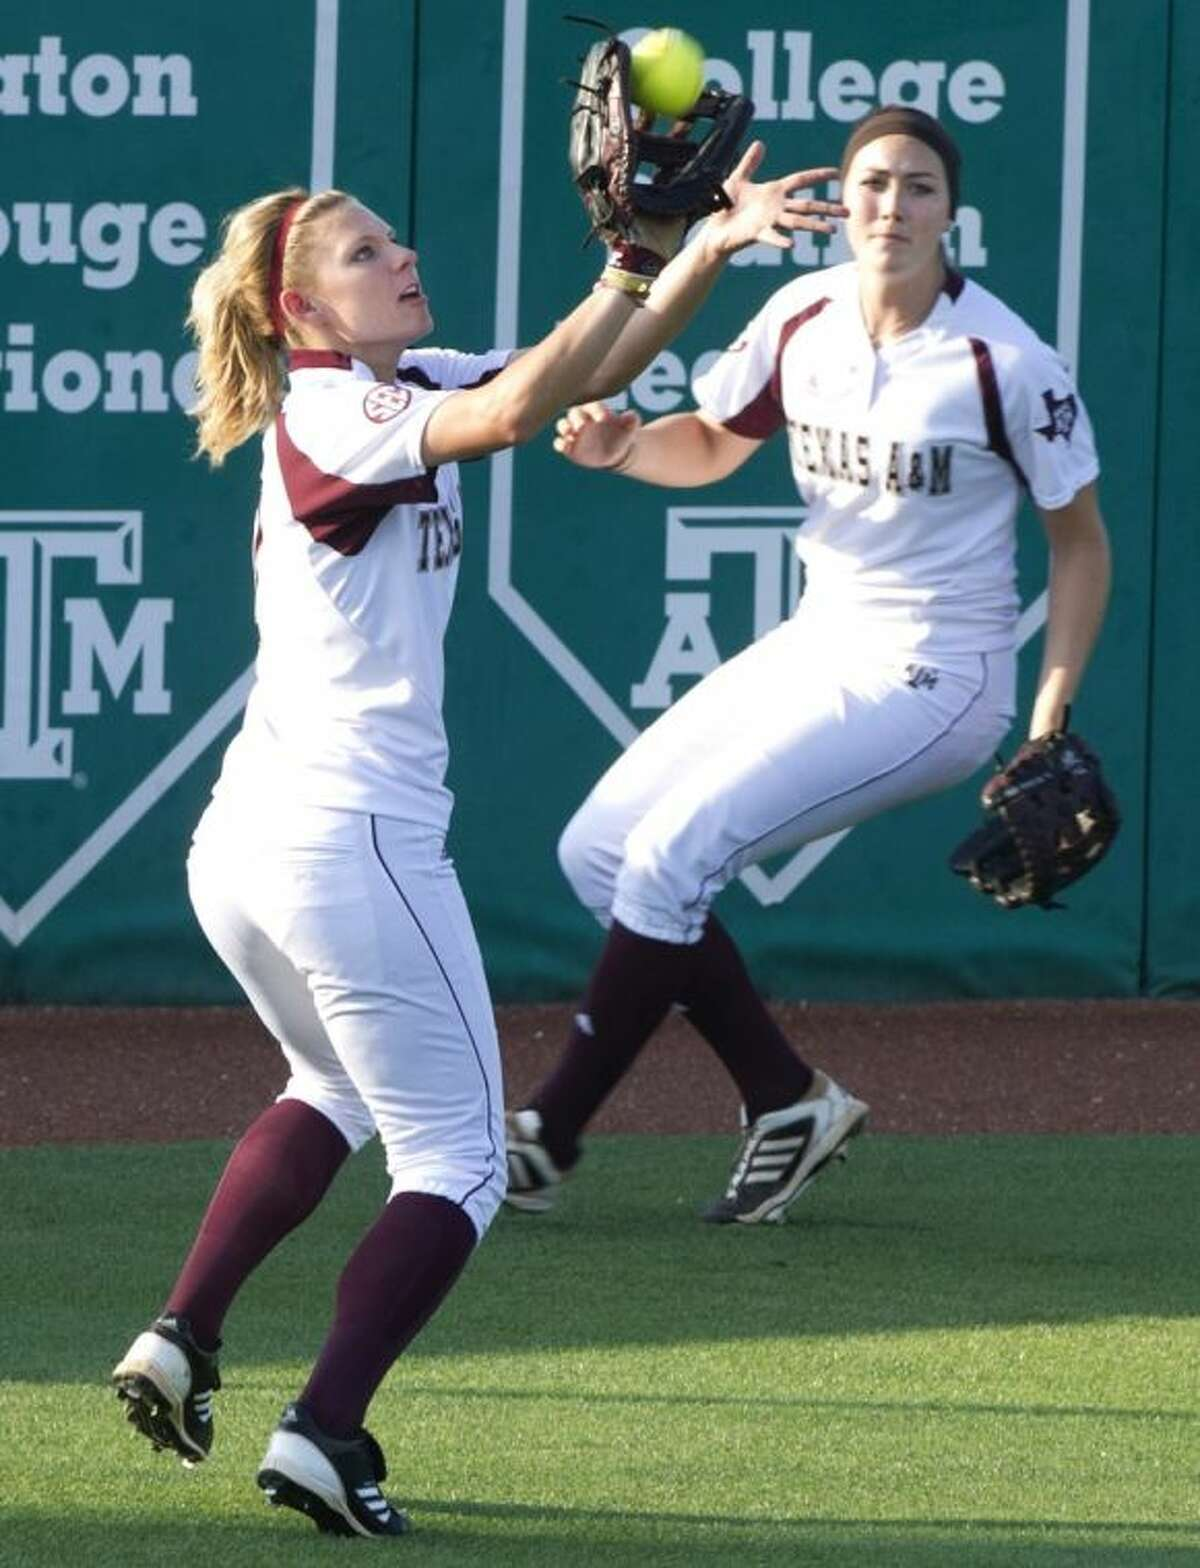 Texas A&M's Cali Lanphear` makes the grab for an out during the fifth inning in the Aggies' 8-0 victory over Baylor.